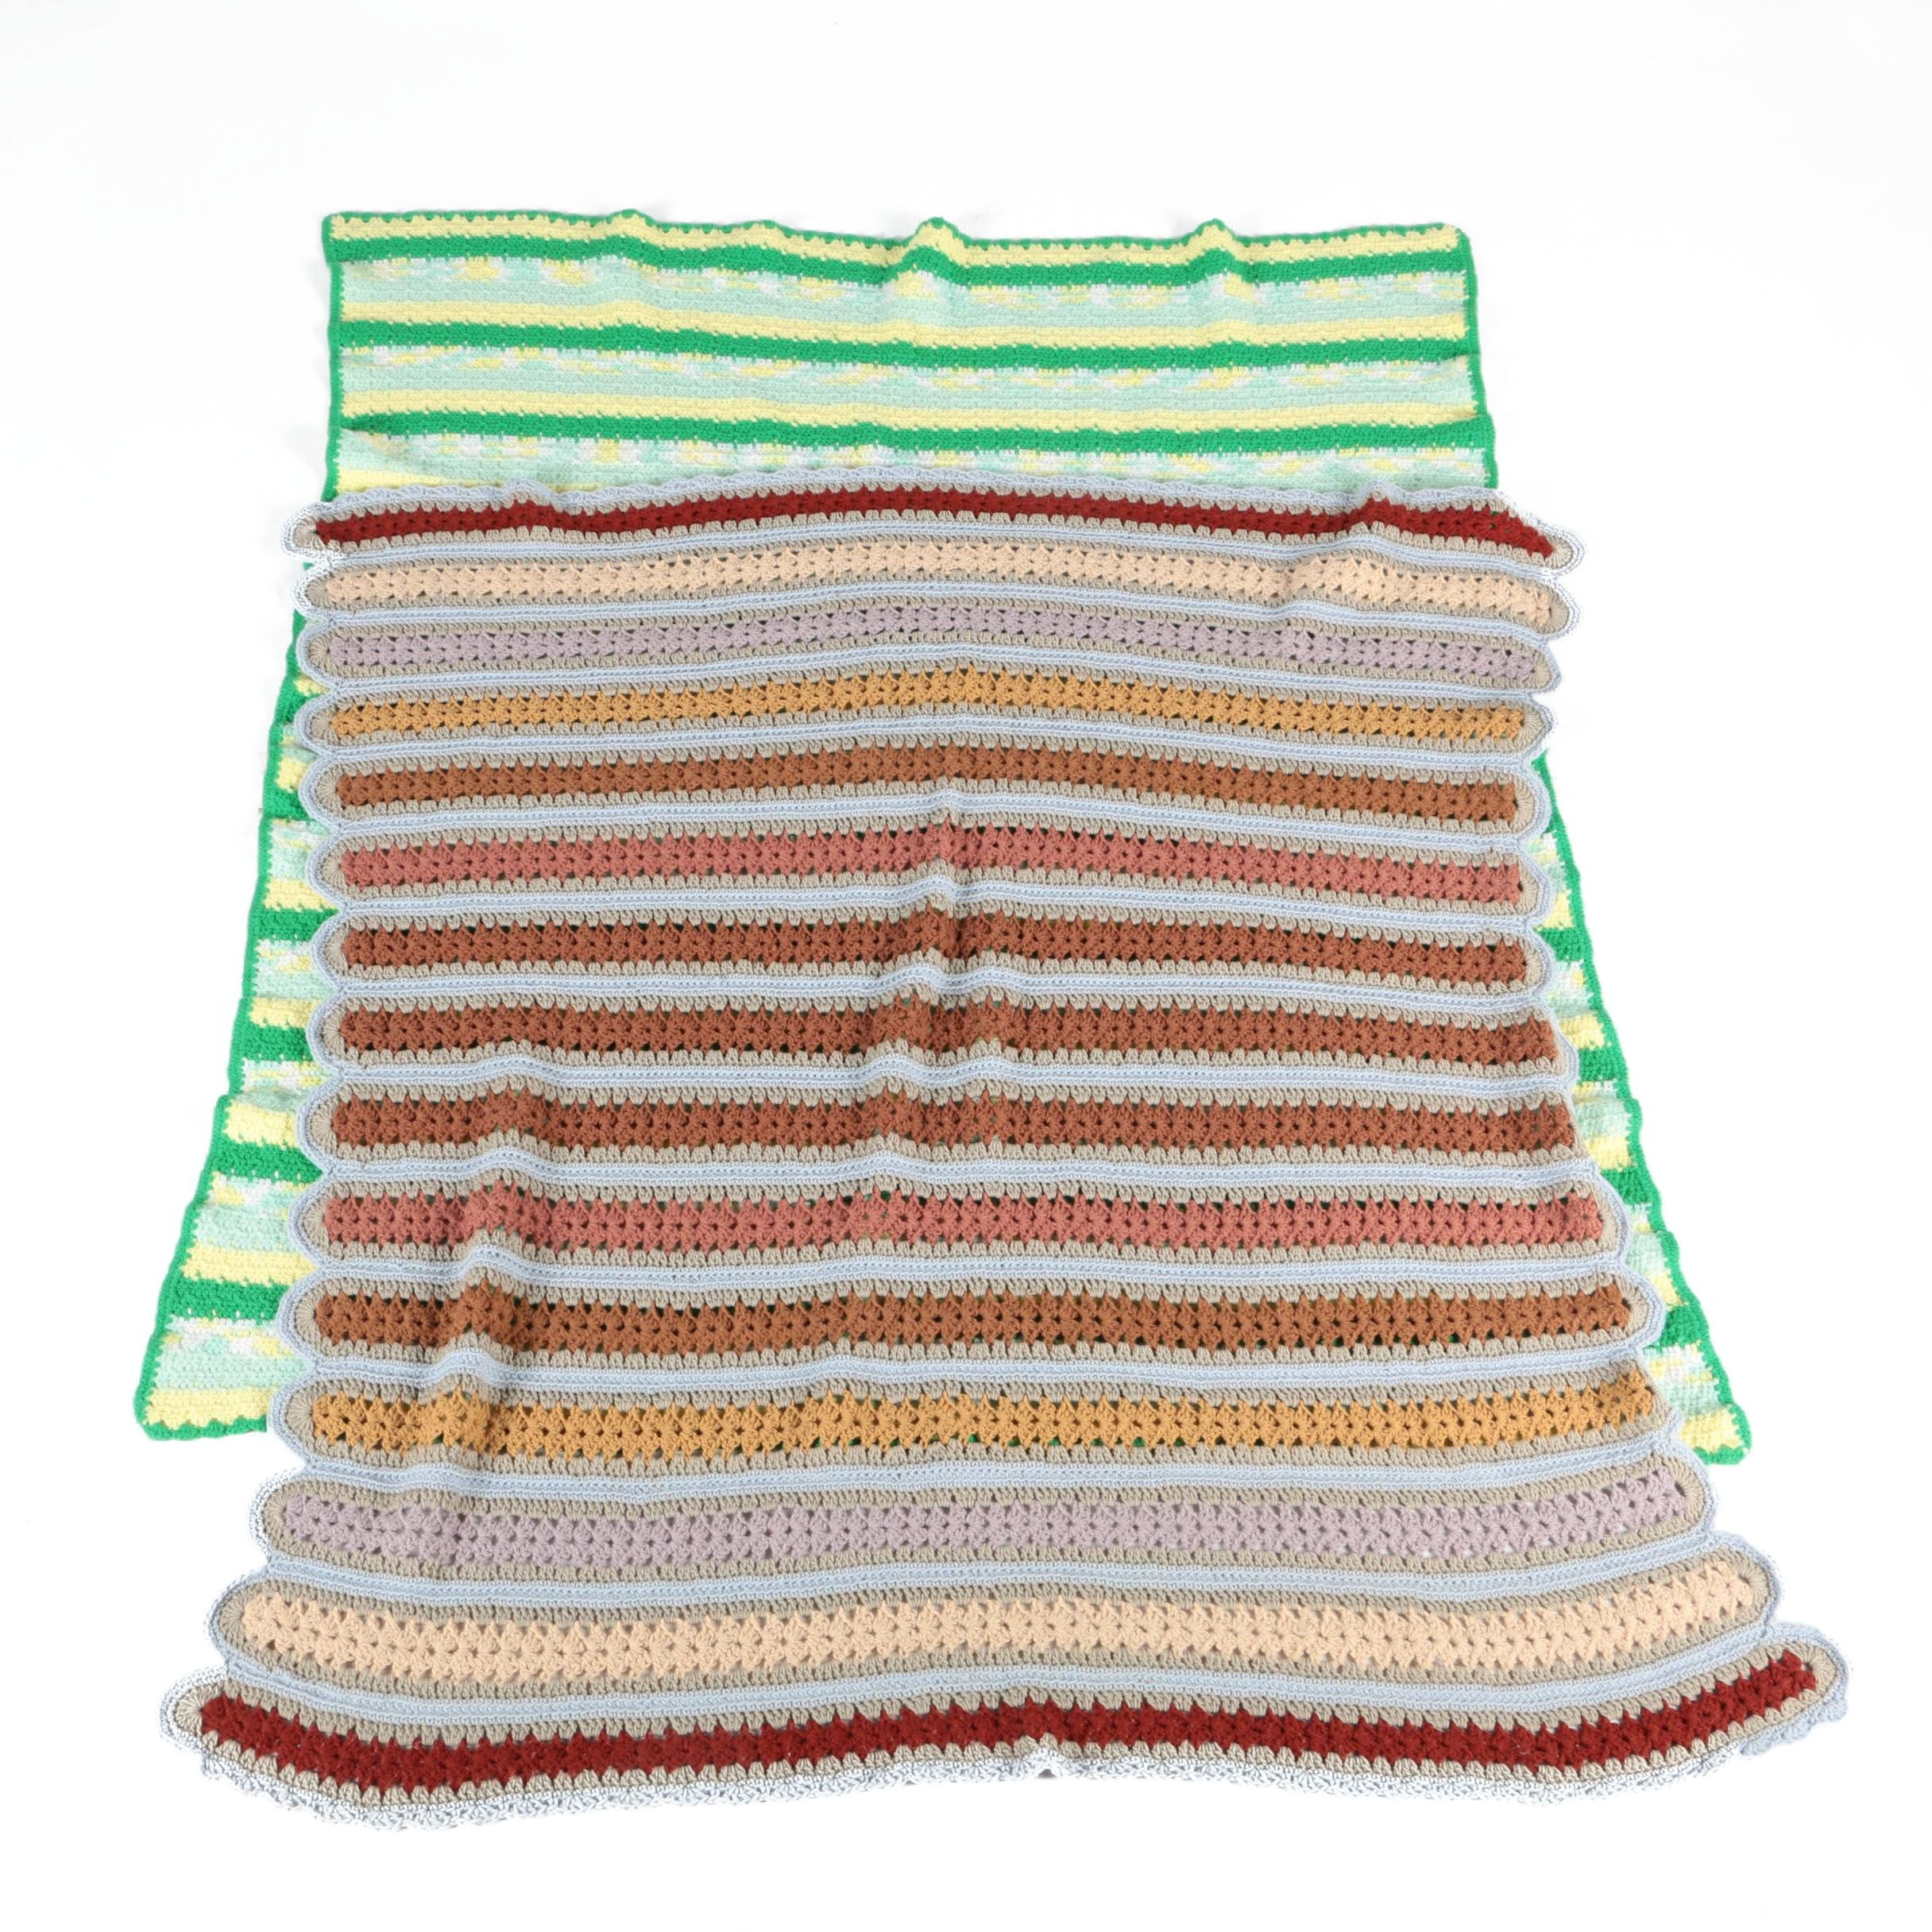 Vintage Hand-Made Throws